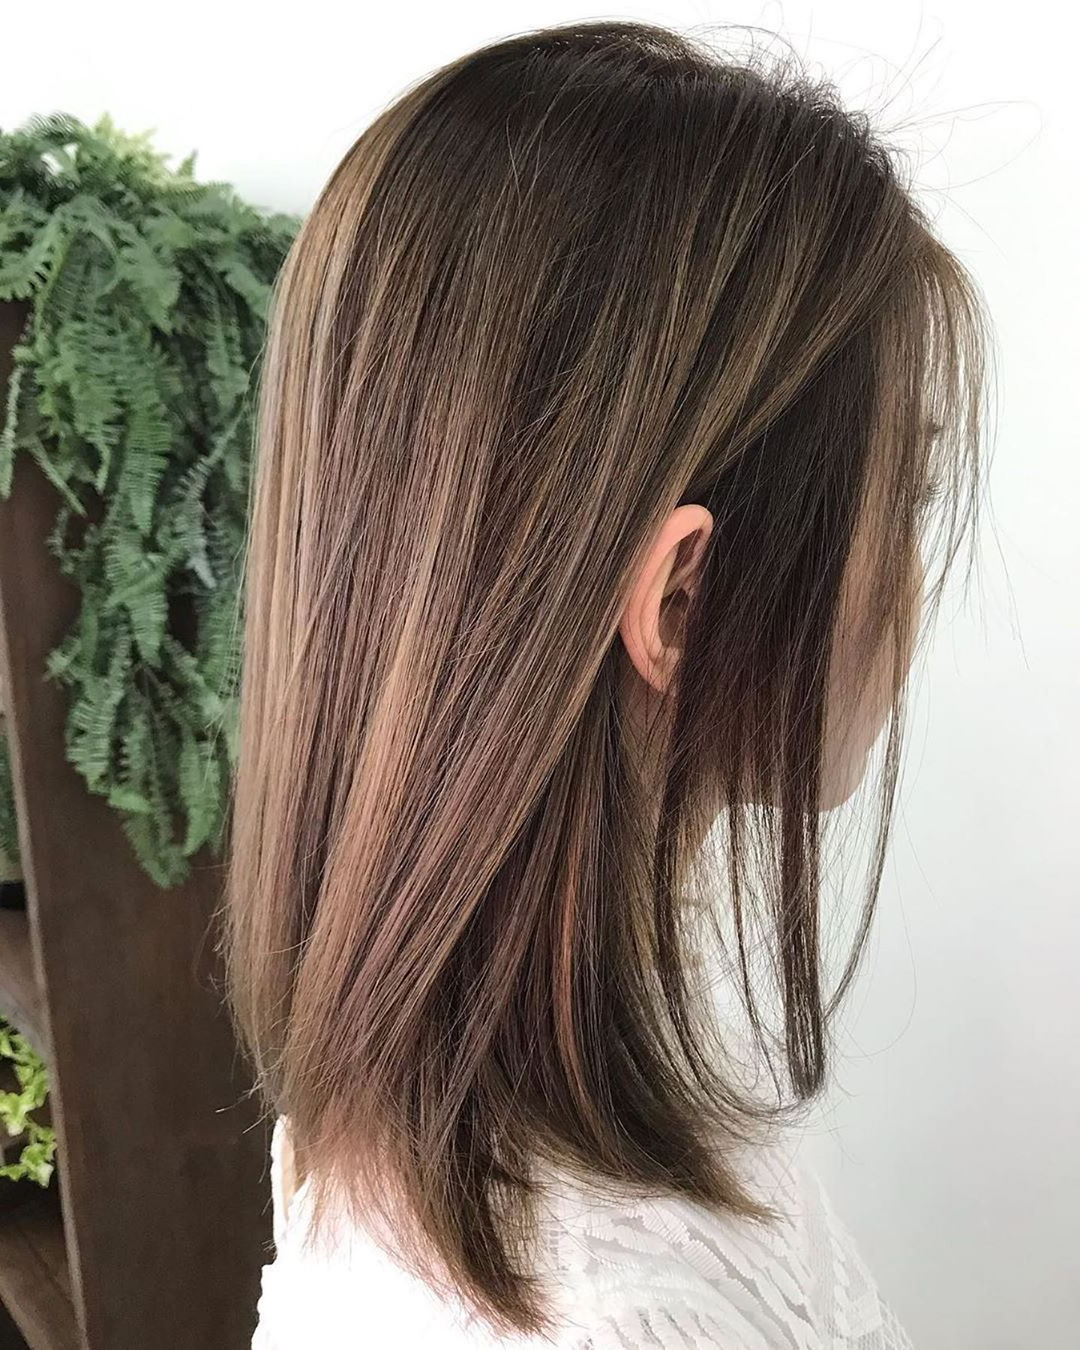 Chestnut Brown With Some Touch Of Honey Brown Highlight Regarding Chestnut Short Hairstyles With Subtle Highlights (View 5 of 20)